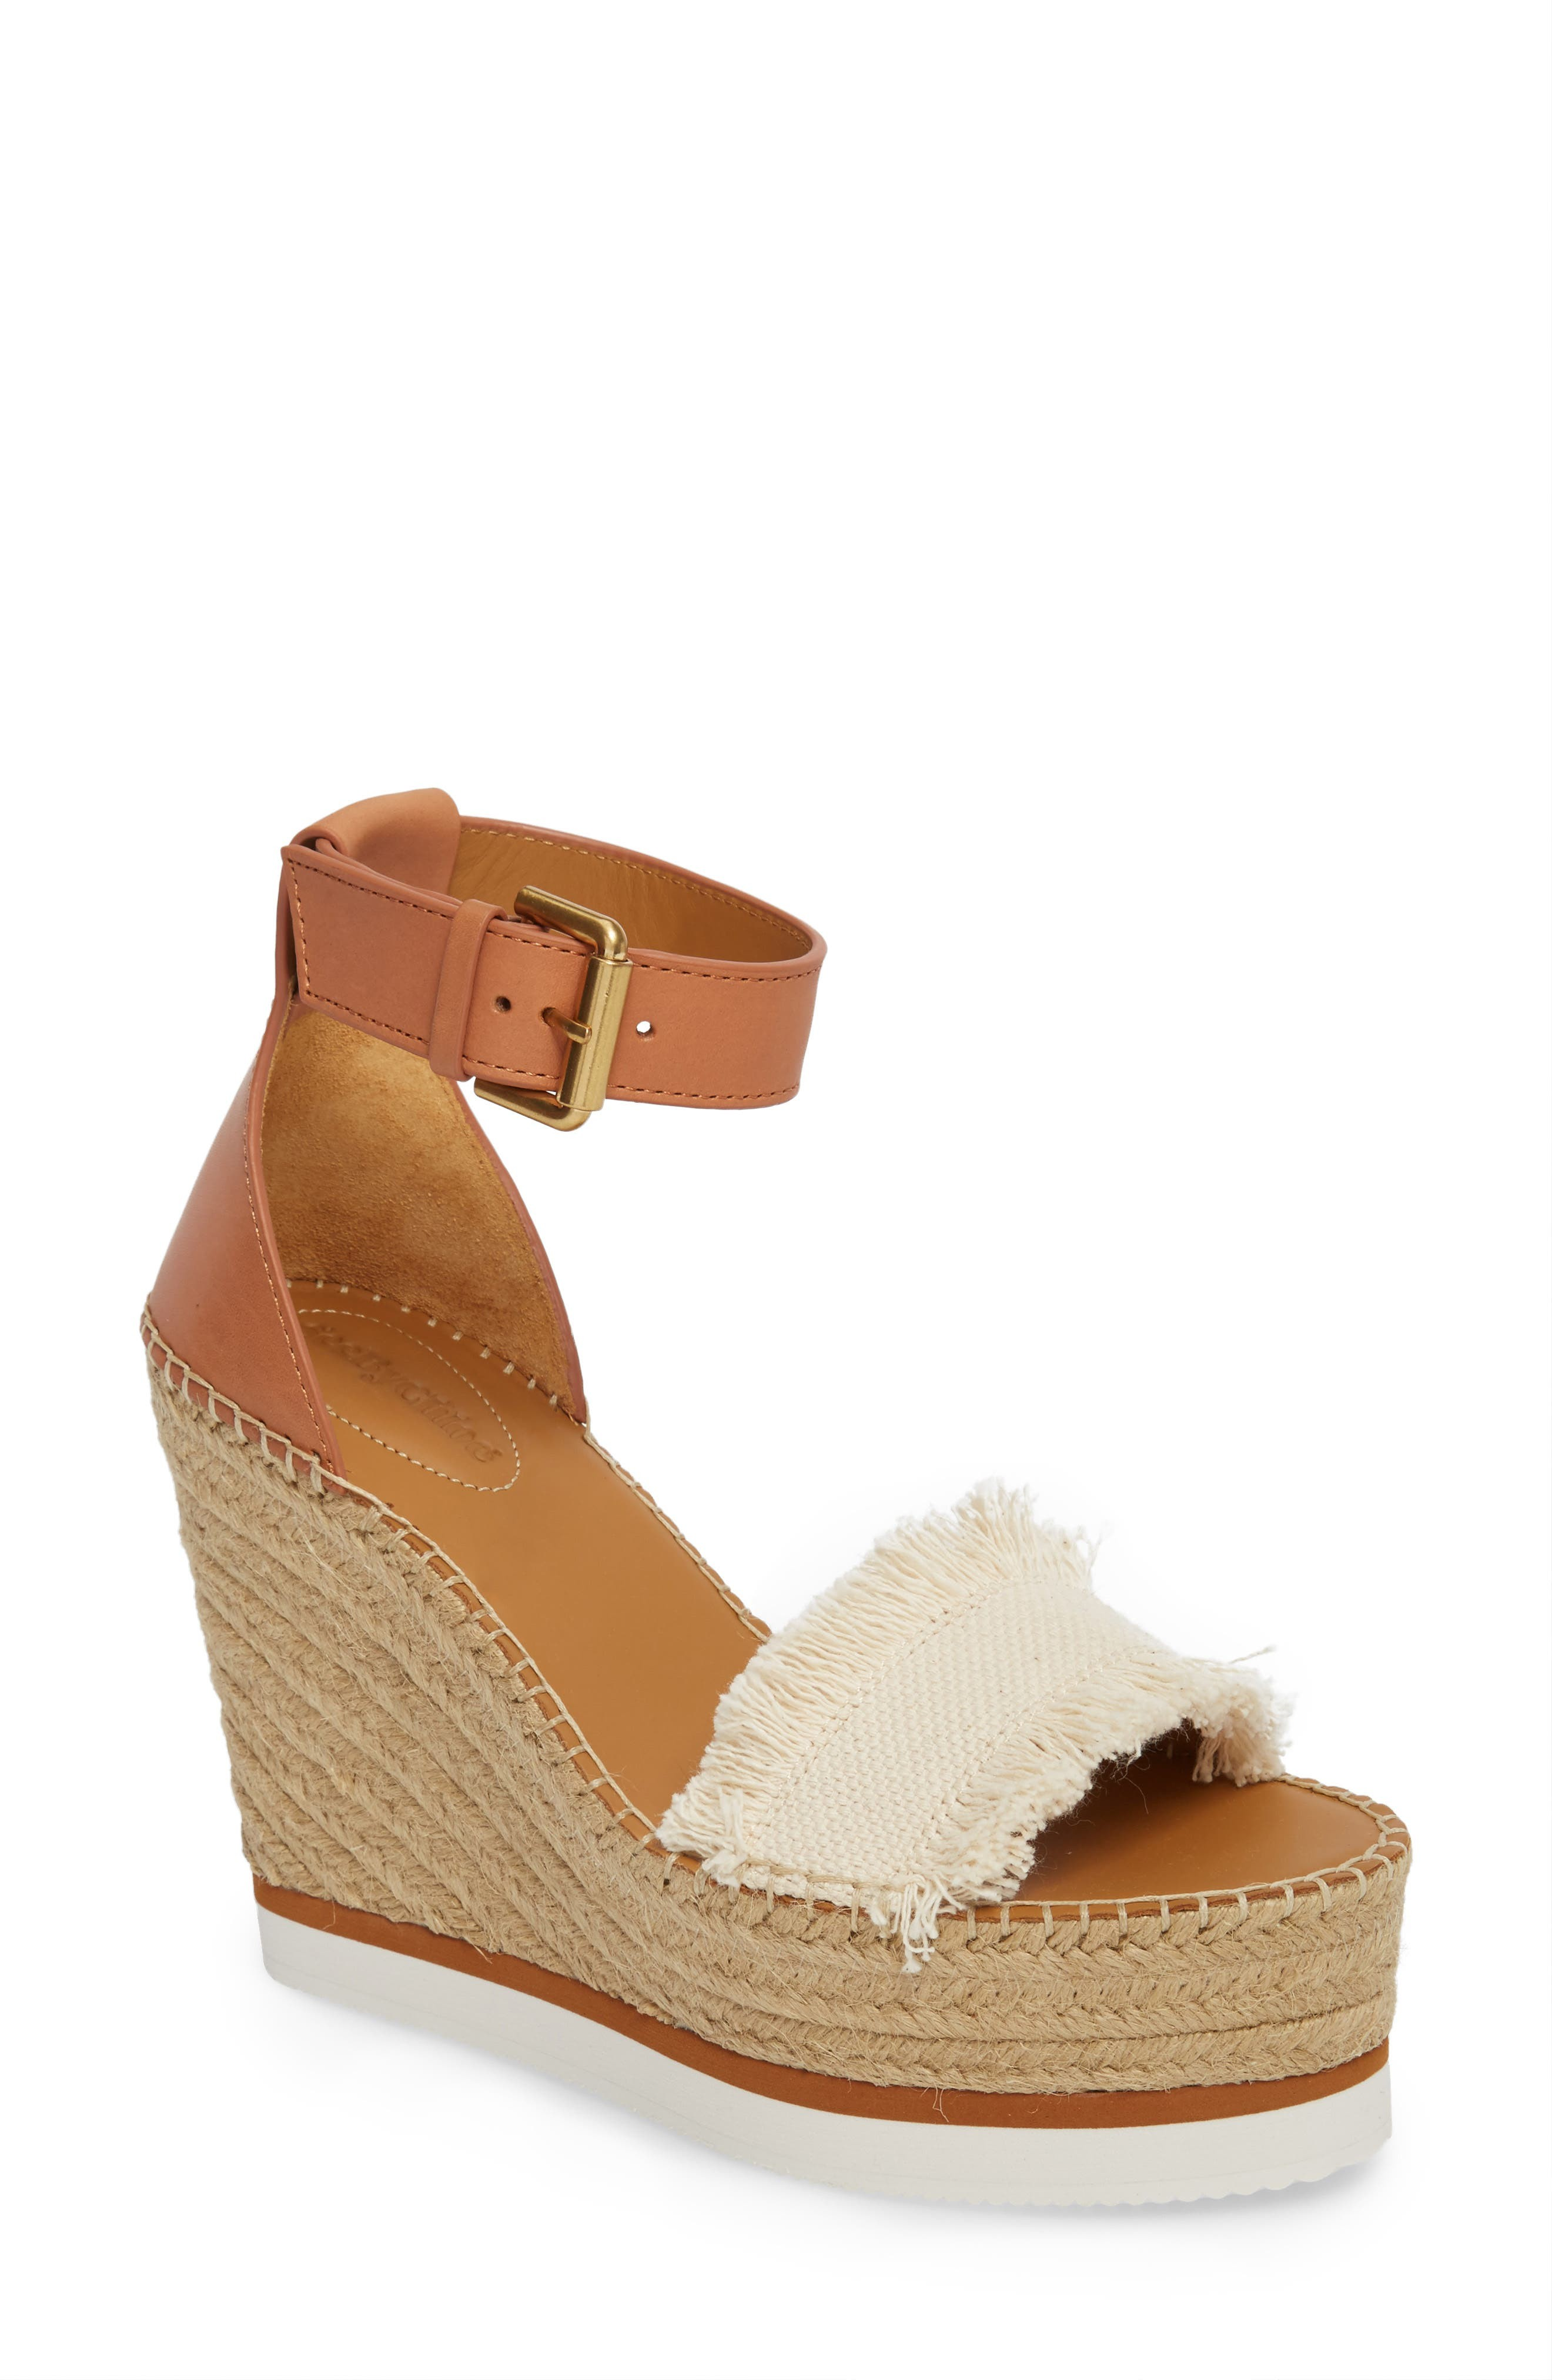 I Ve Rounded Up My Favorites Below From Everyday To Out On The Town Shoes Just Click Images Each Product